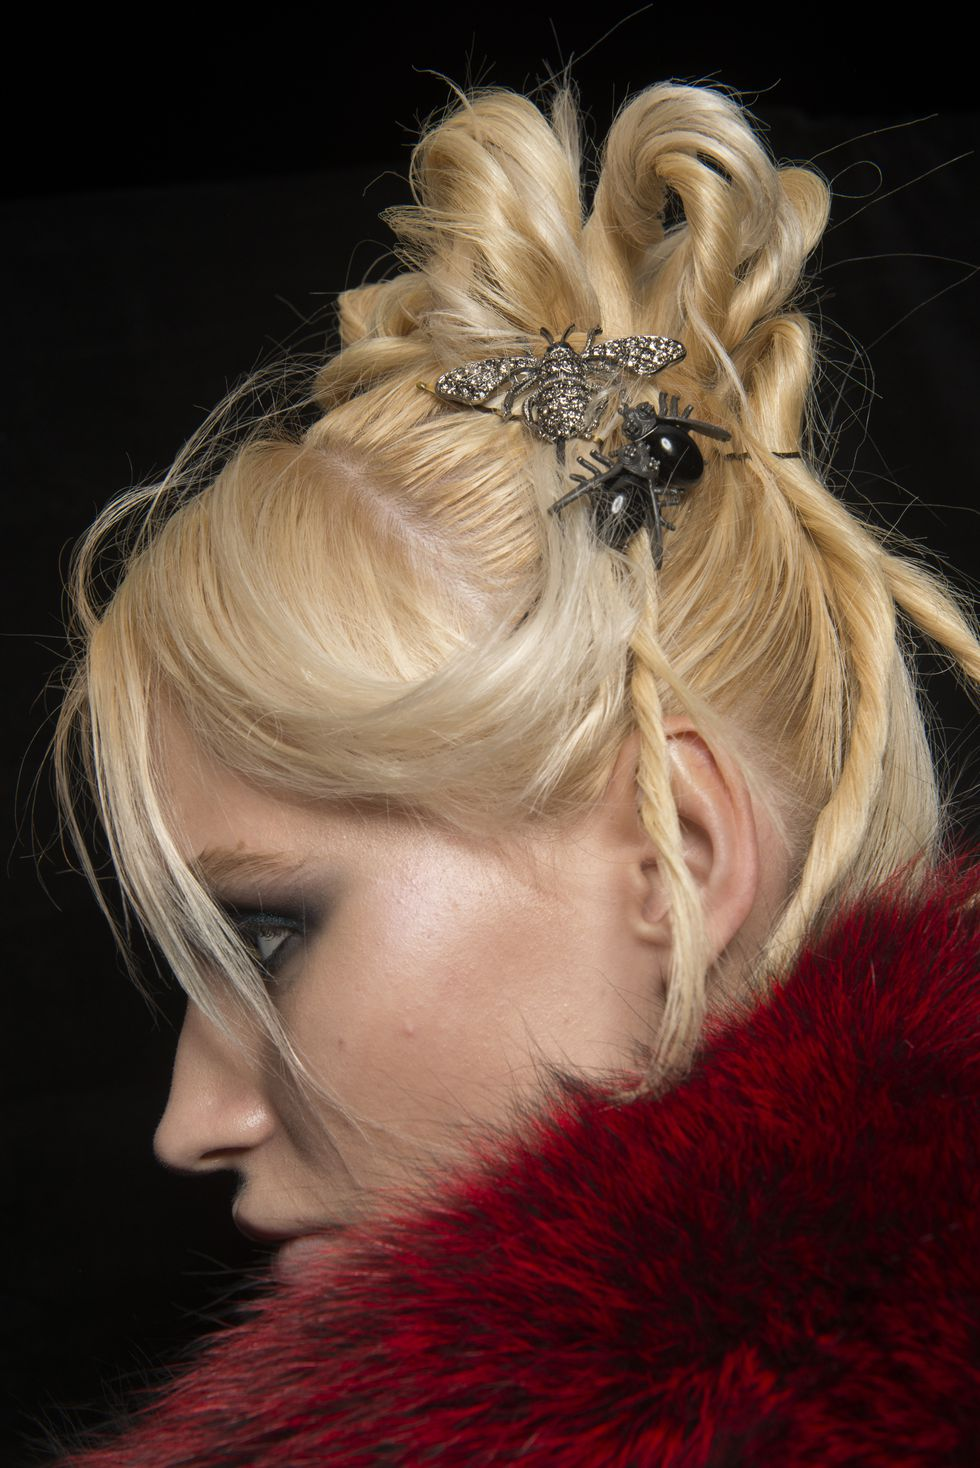 ponytails-how-to-style-hair-accessories-clip-barrettes-twists-high.jpg